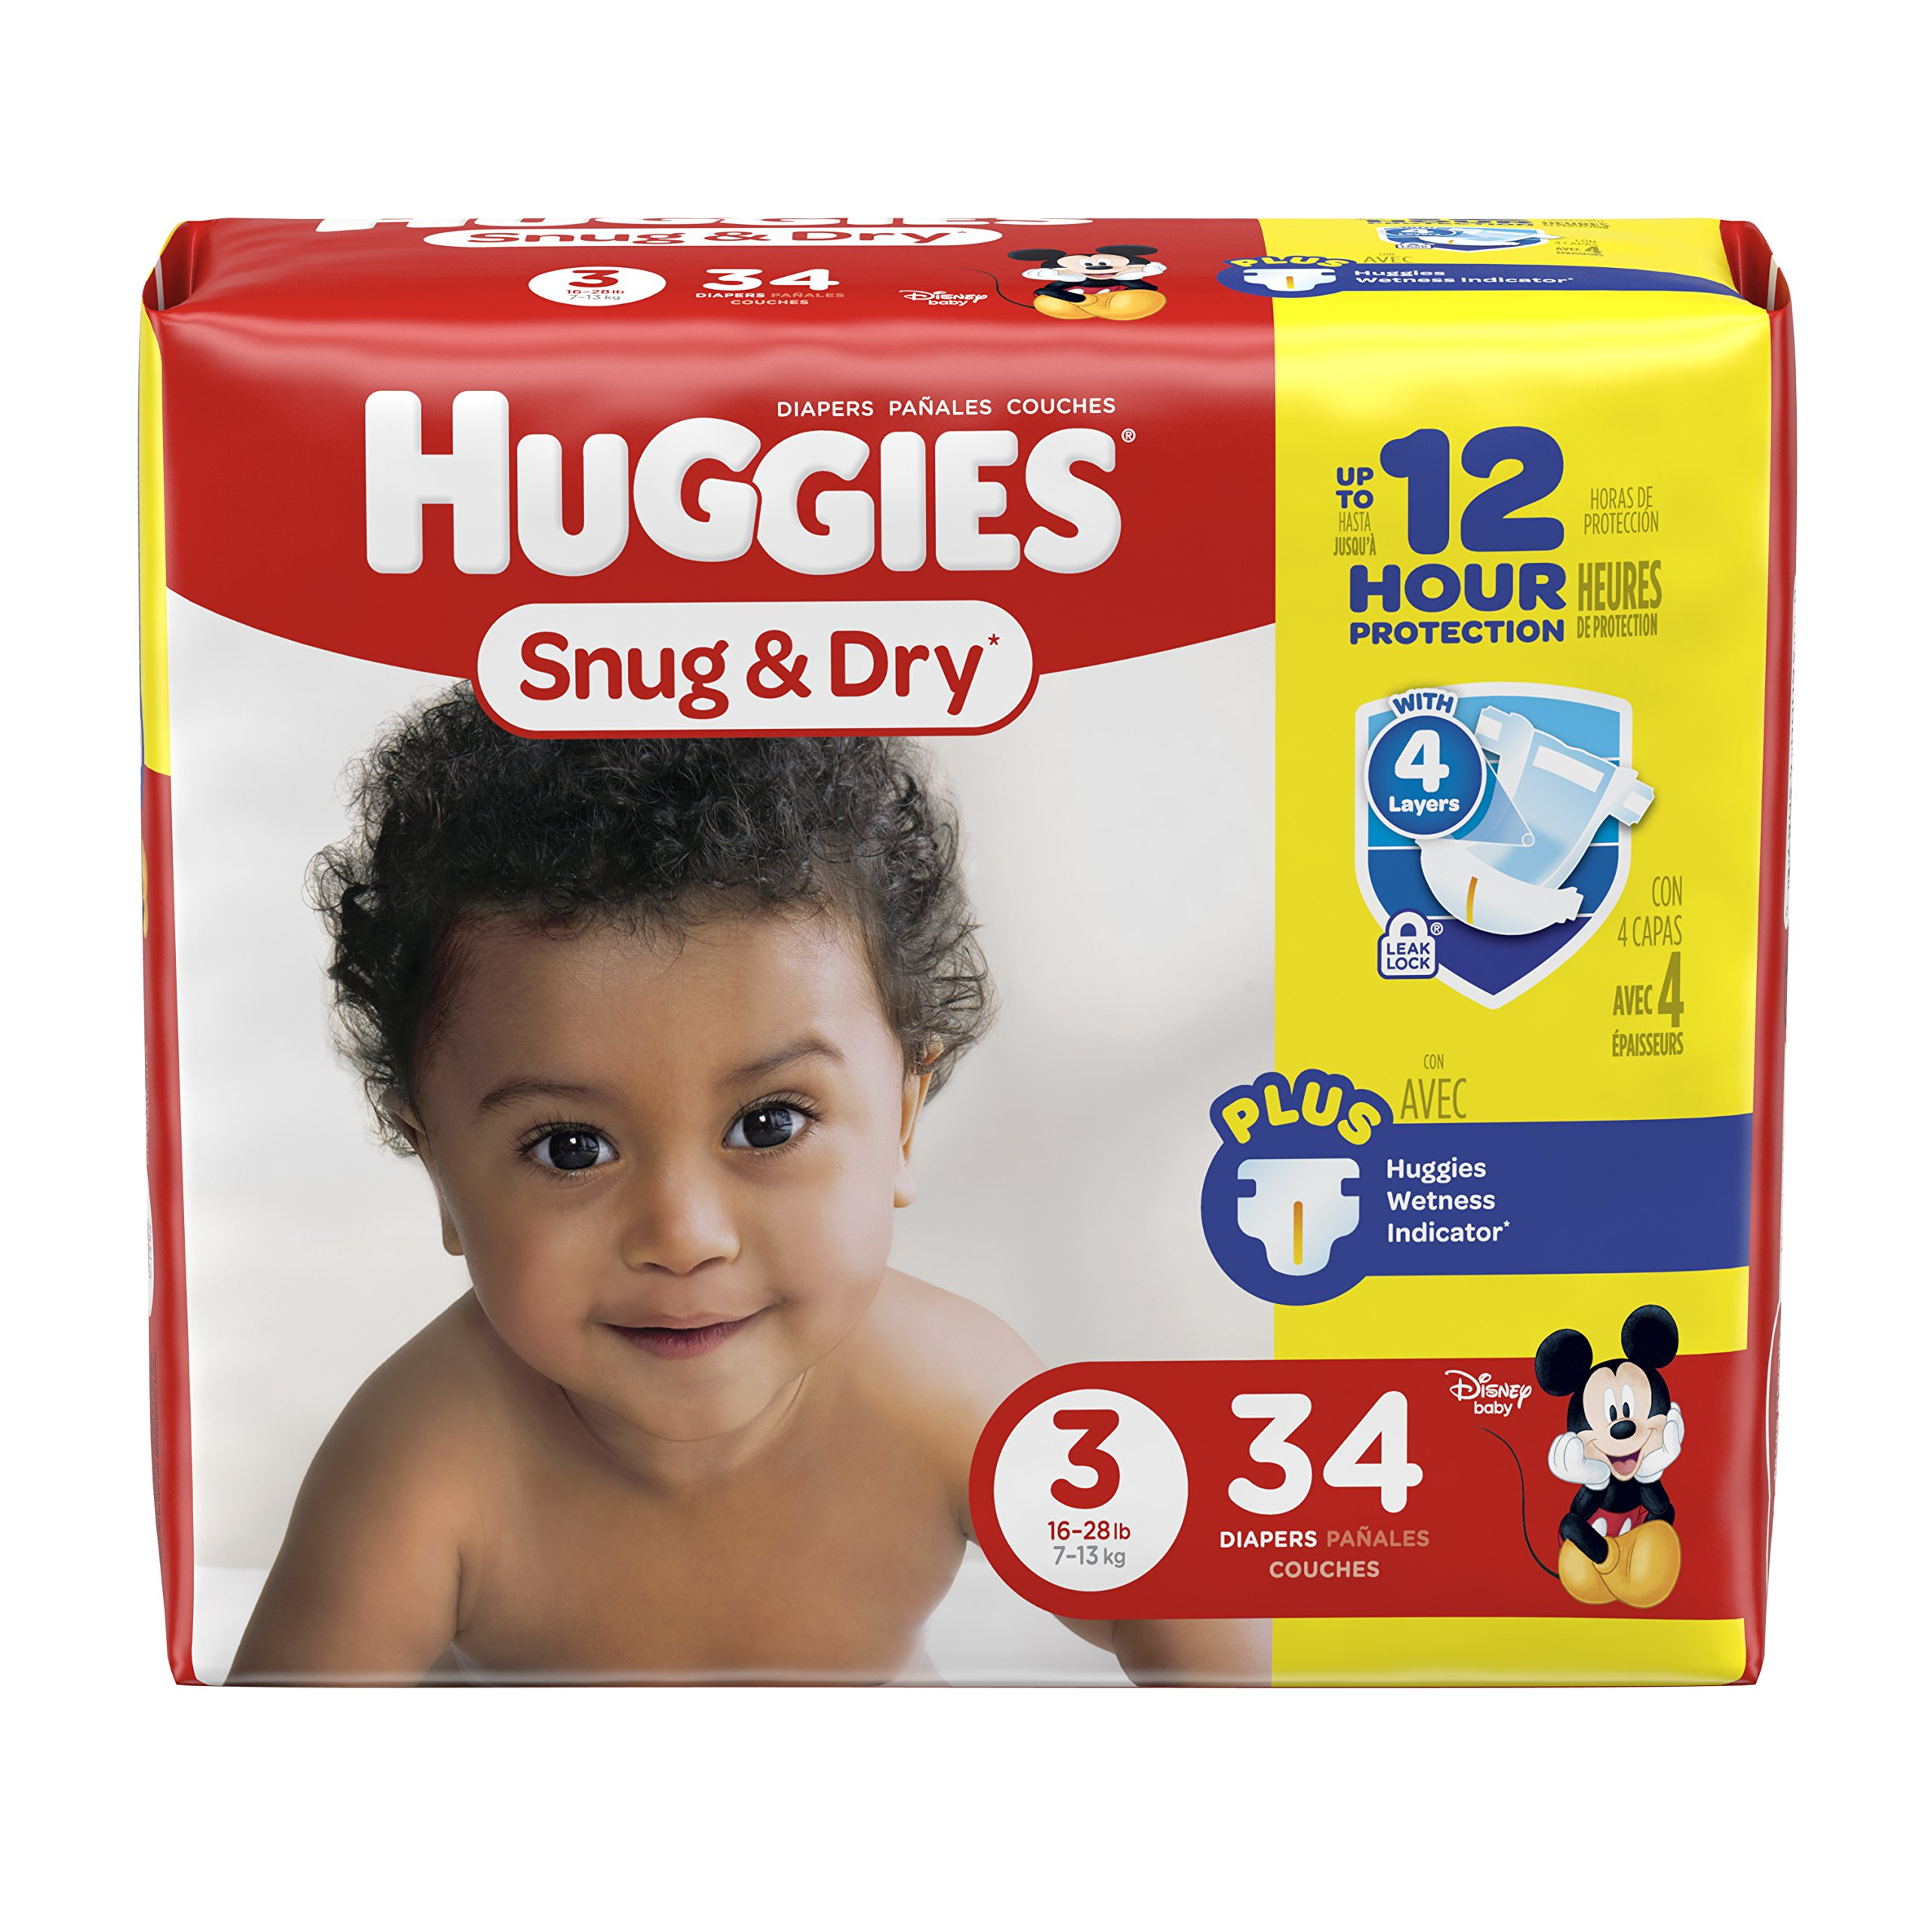 HUGGIES Snug & Dry Diapers, Size 3, 34 Count (Packaging May Vary)